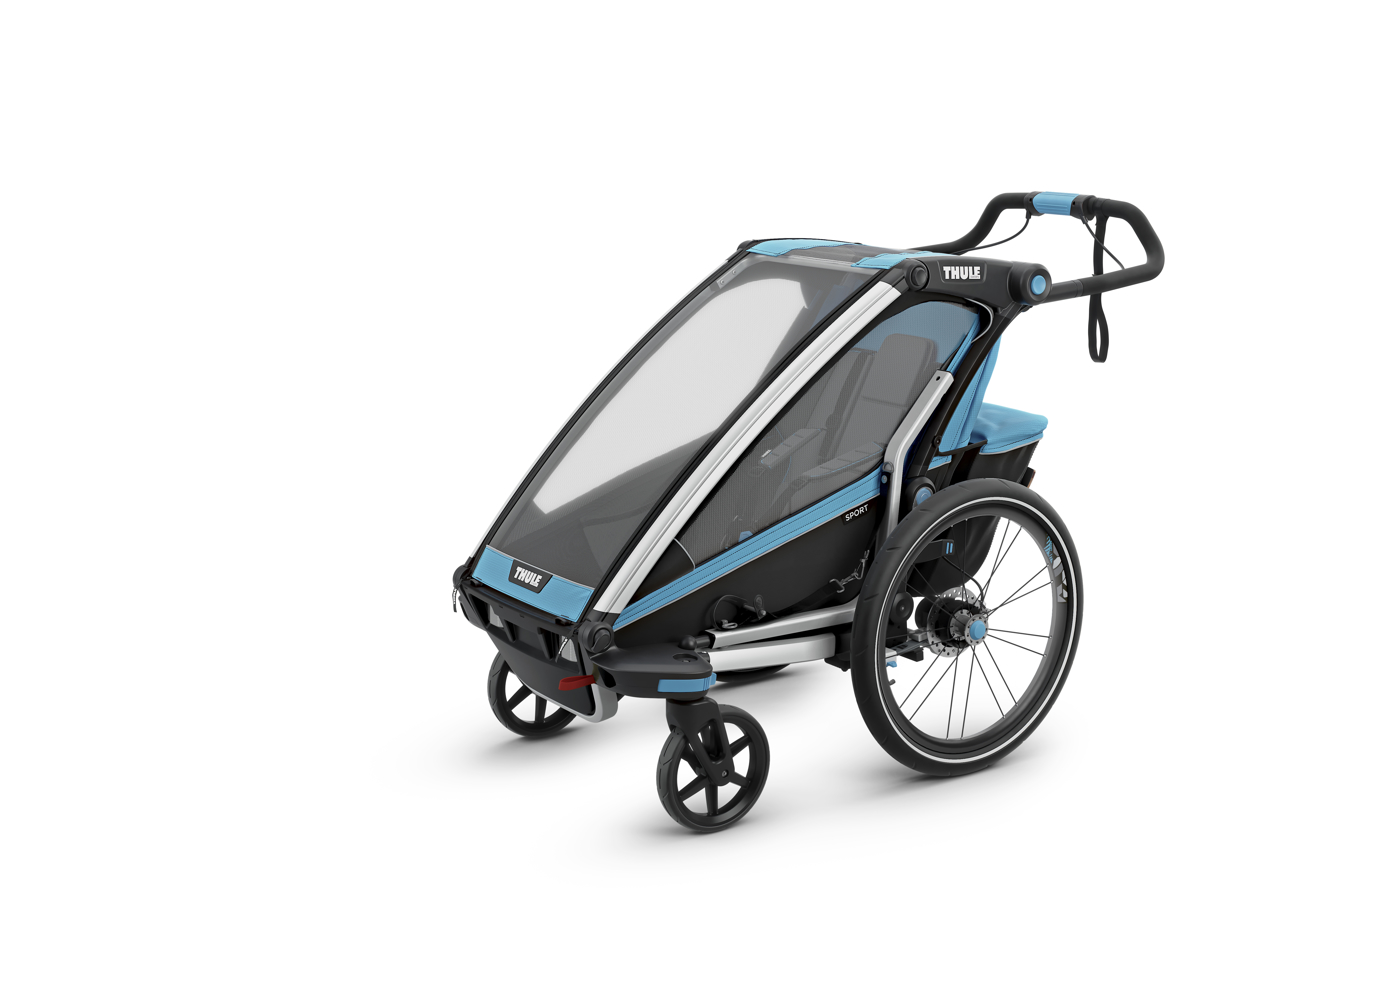 Thule_Chariot_Sport1_ThuleBlue_Strolling_ISO_10201001